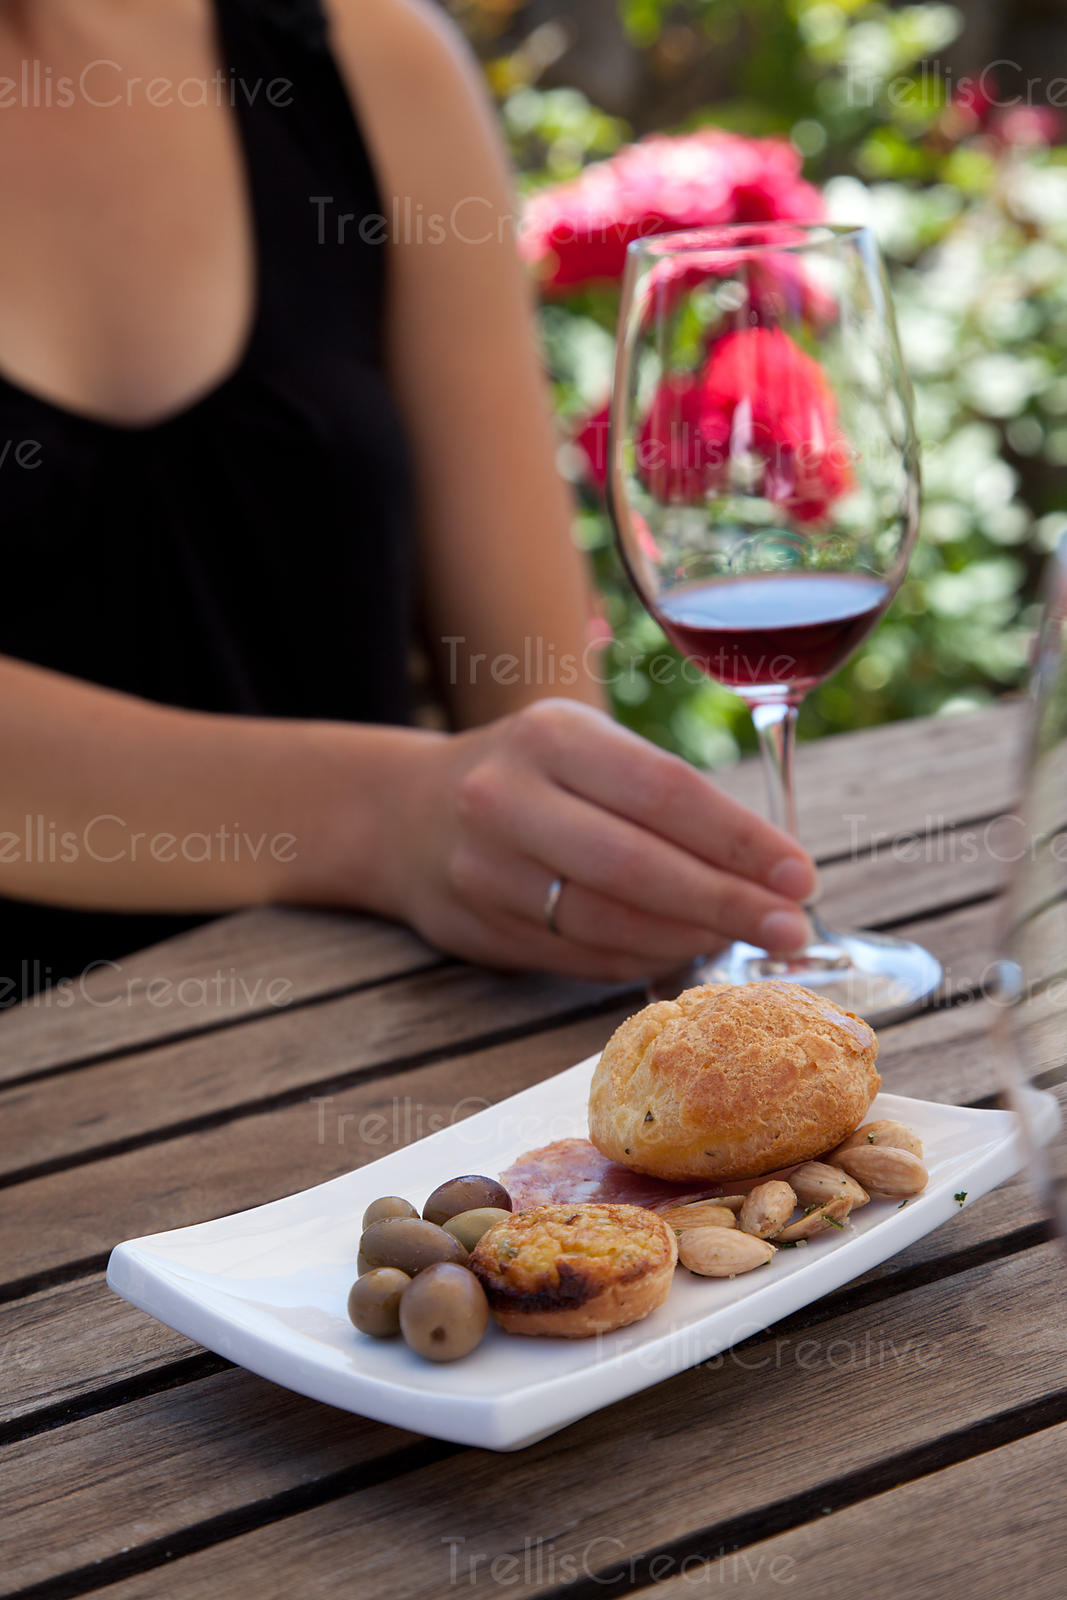 Young woman holding a glass or red wine at a wine and food pairing outdoors